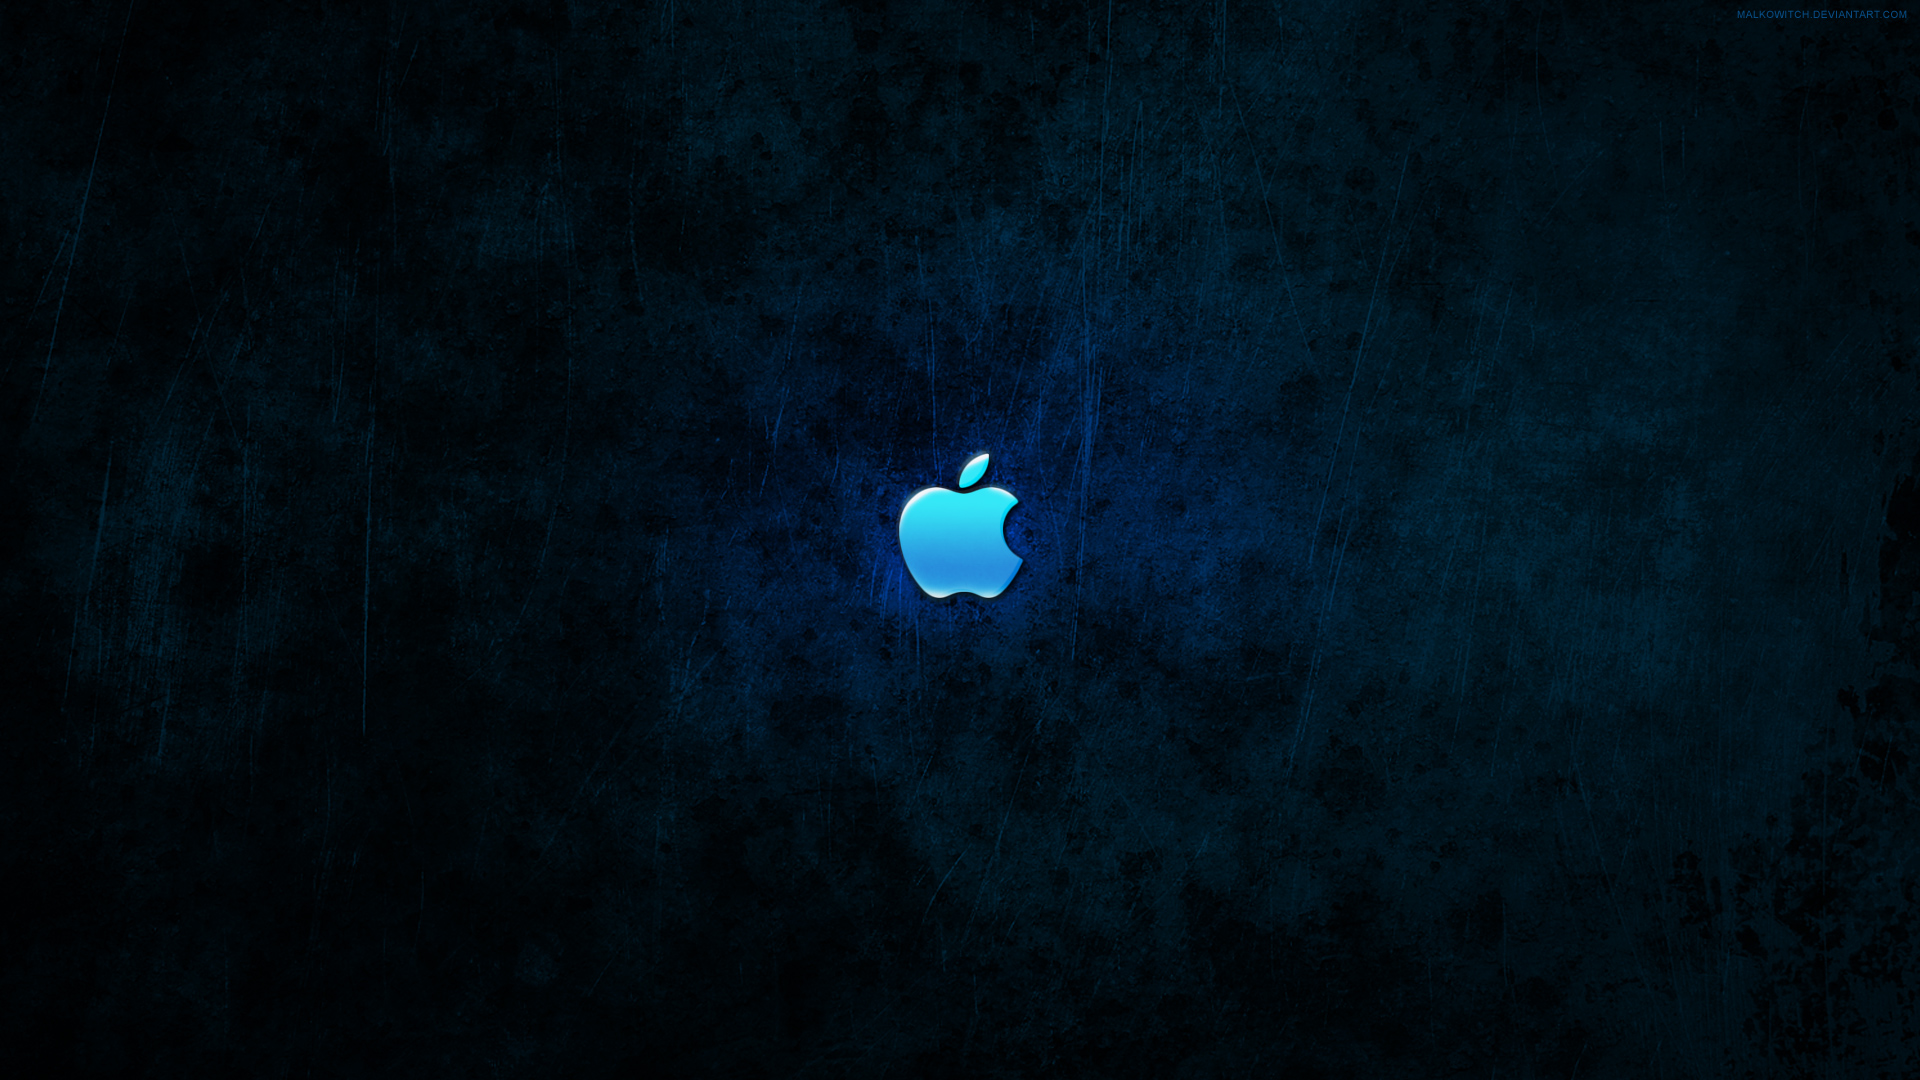 Wallpapers Dark Blue Posted By Ethan Cunningham